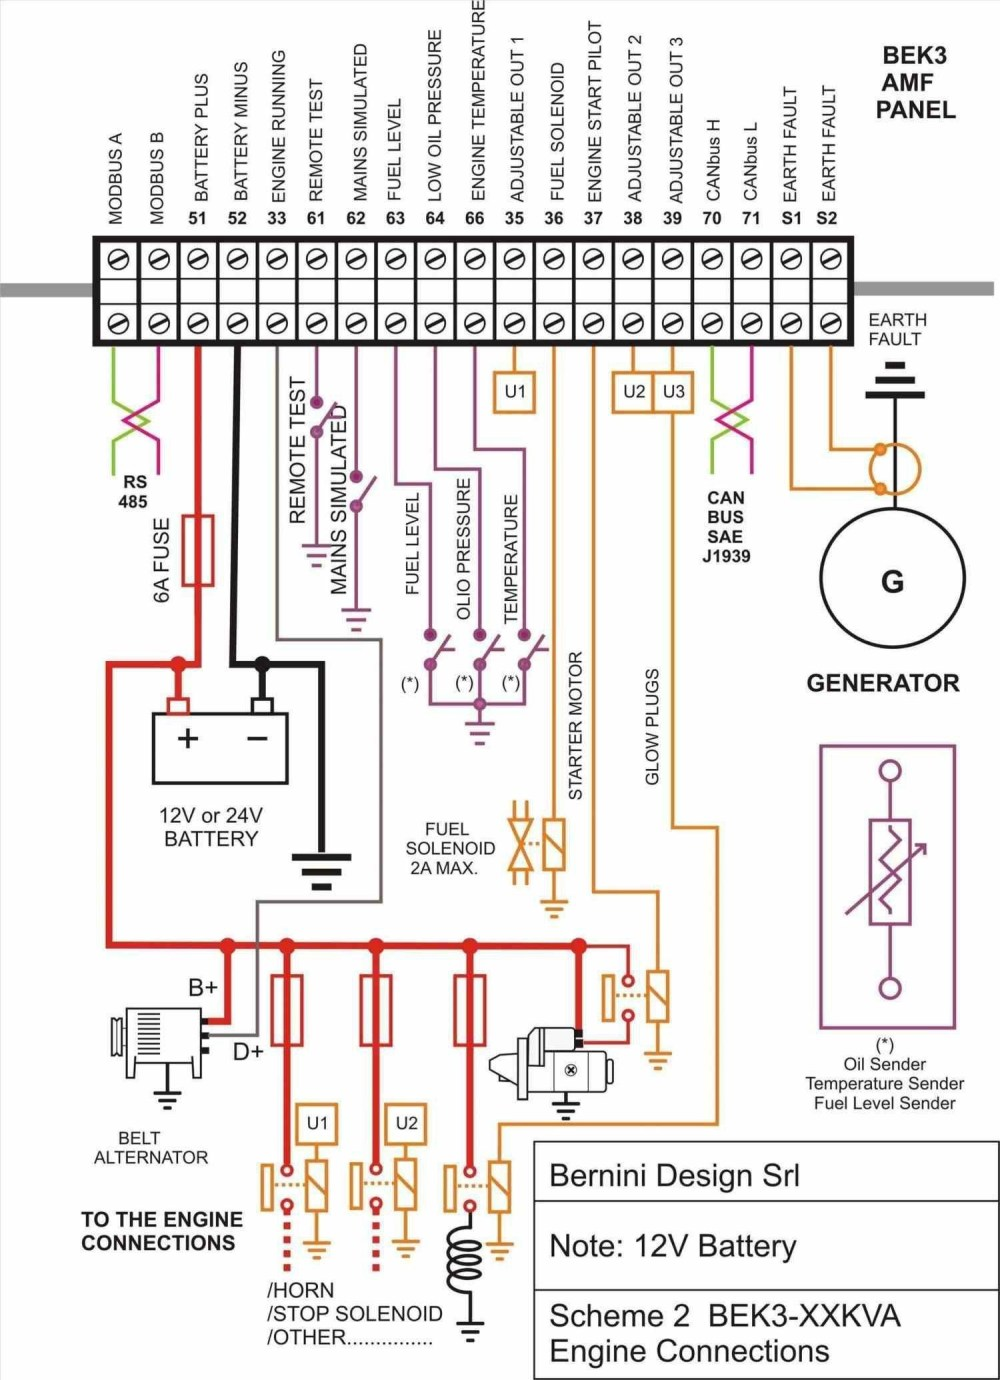 medium resolution of lennox g10 furnace wiring diagram wiring diagrams schemaconcord furnace wiring diagram wiring diagrams schema johnson controls